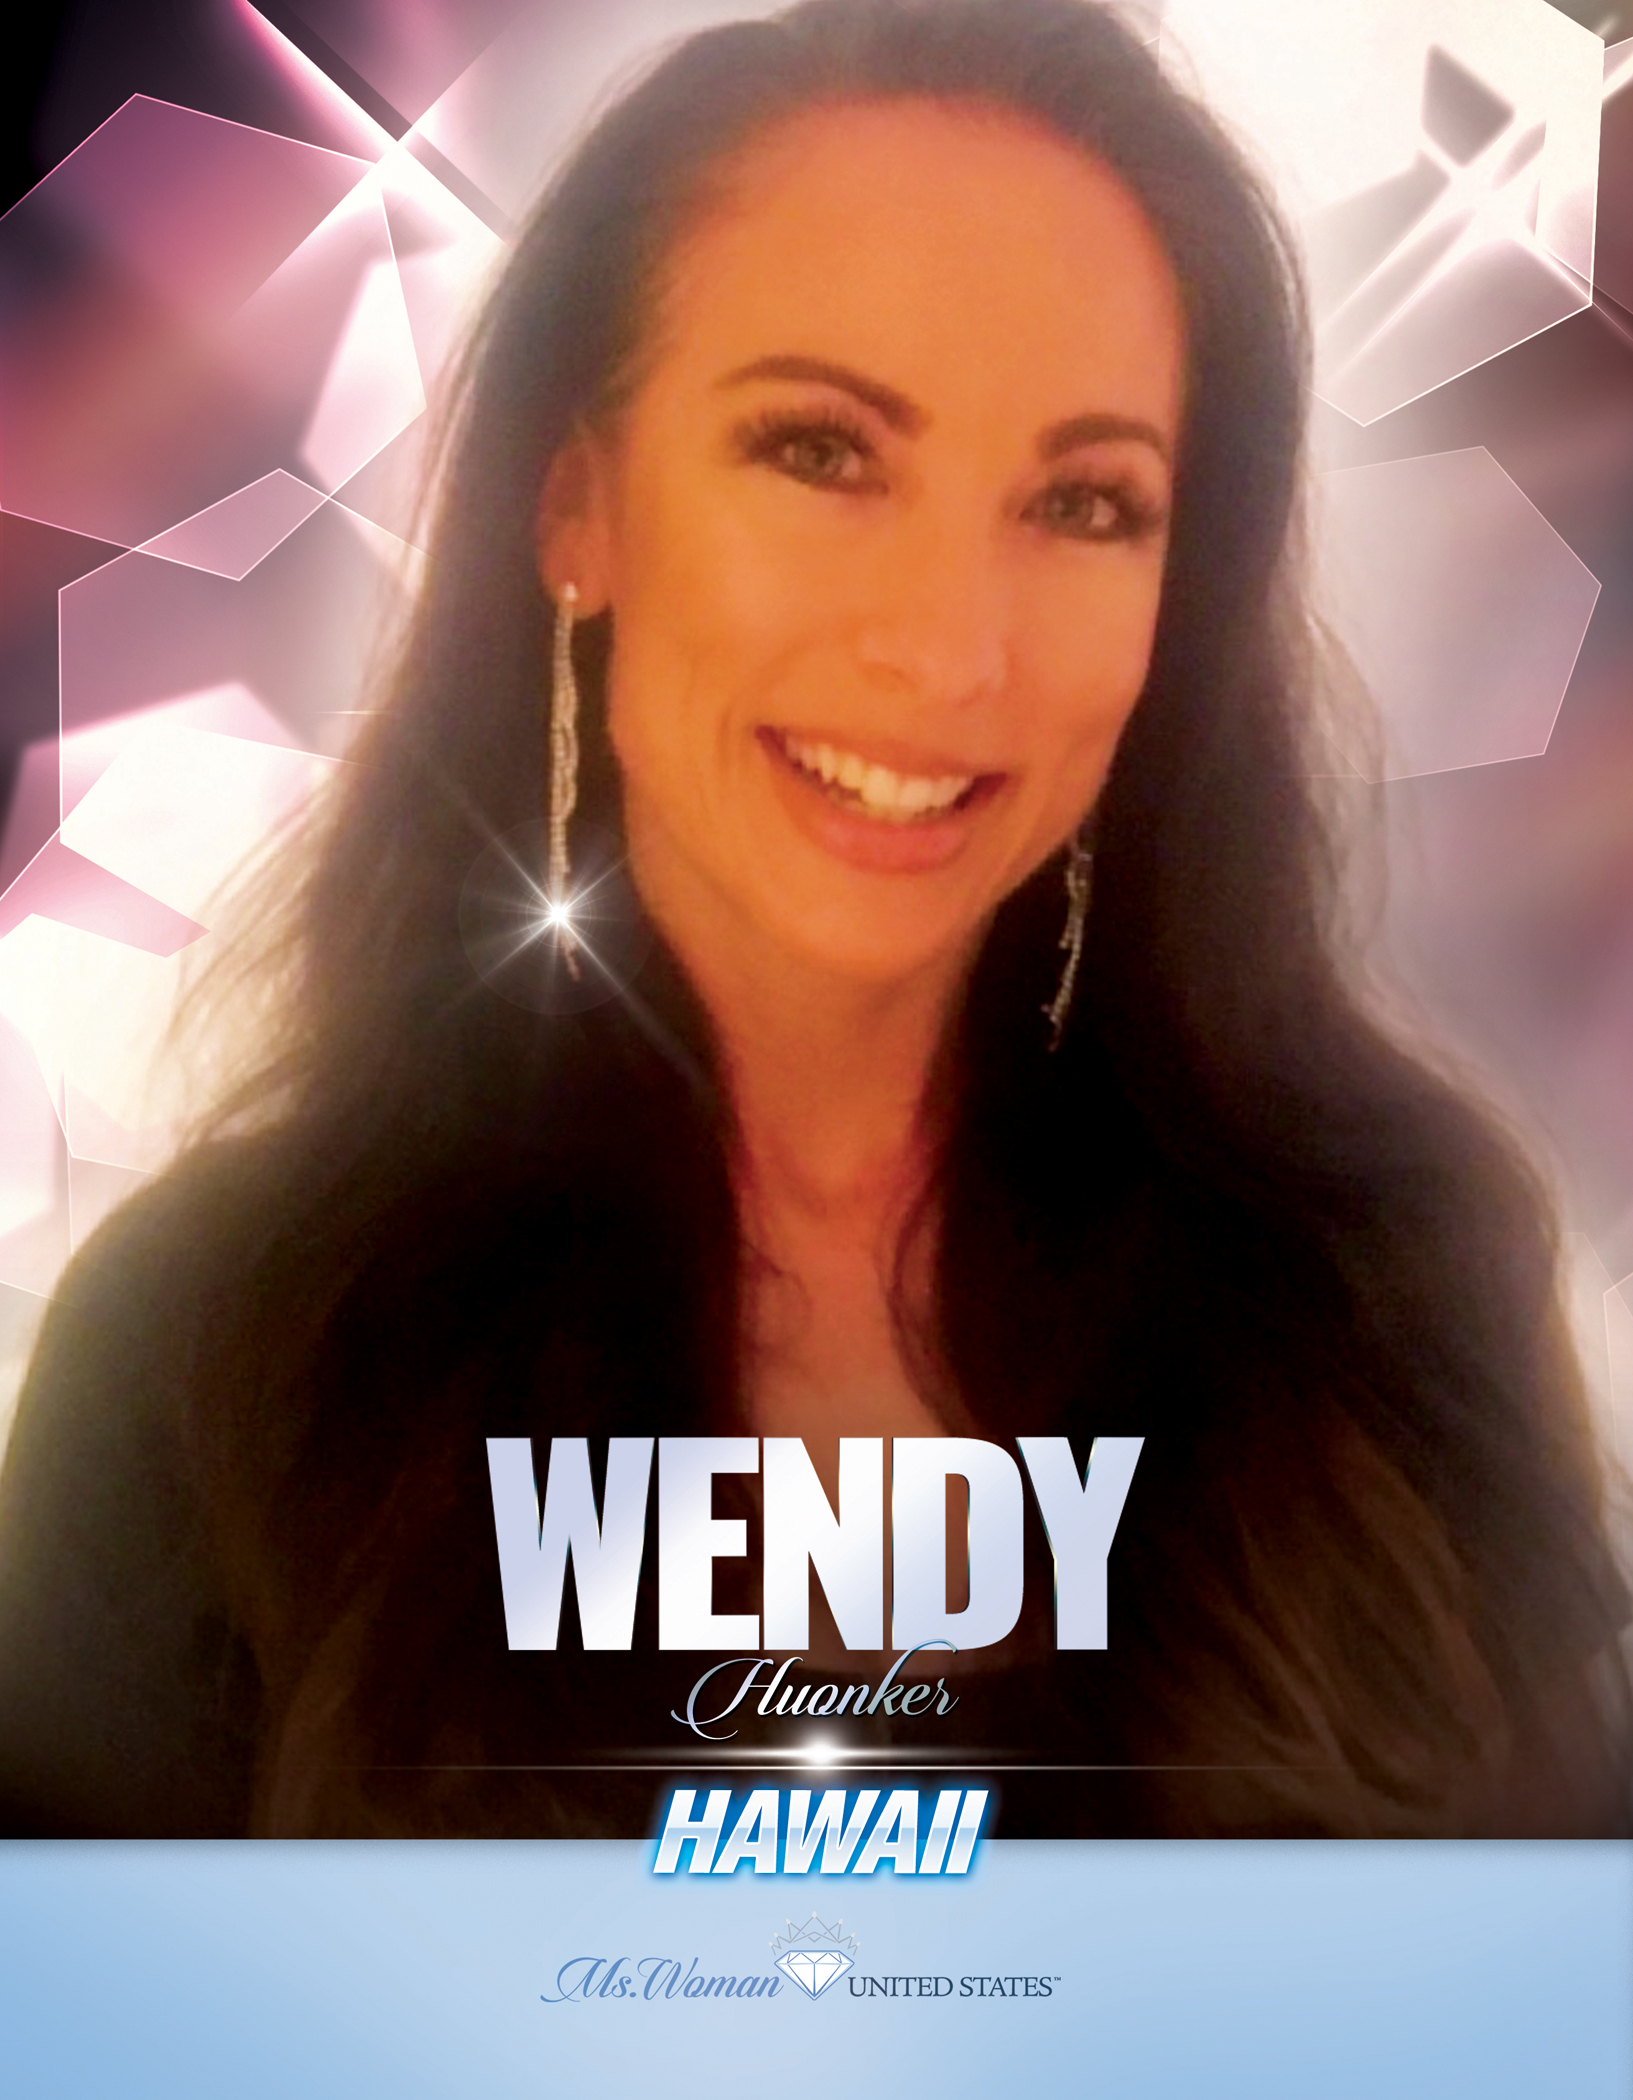 Wendy Huonker Ms. Woman Hawaii United States - 2019